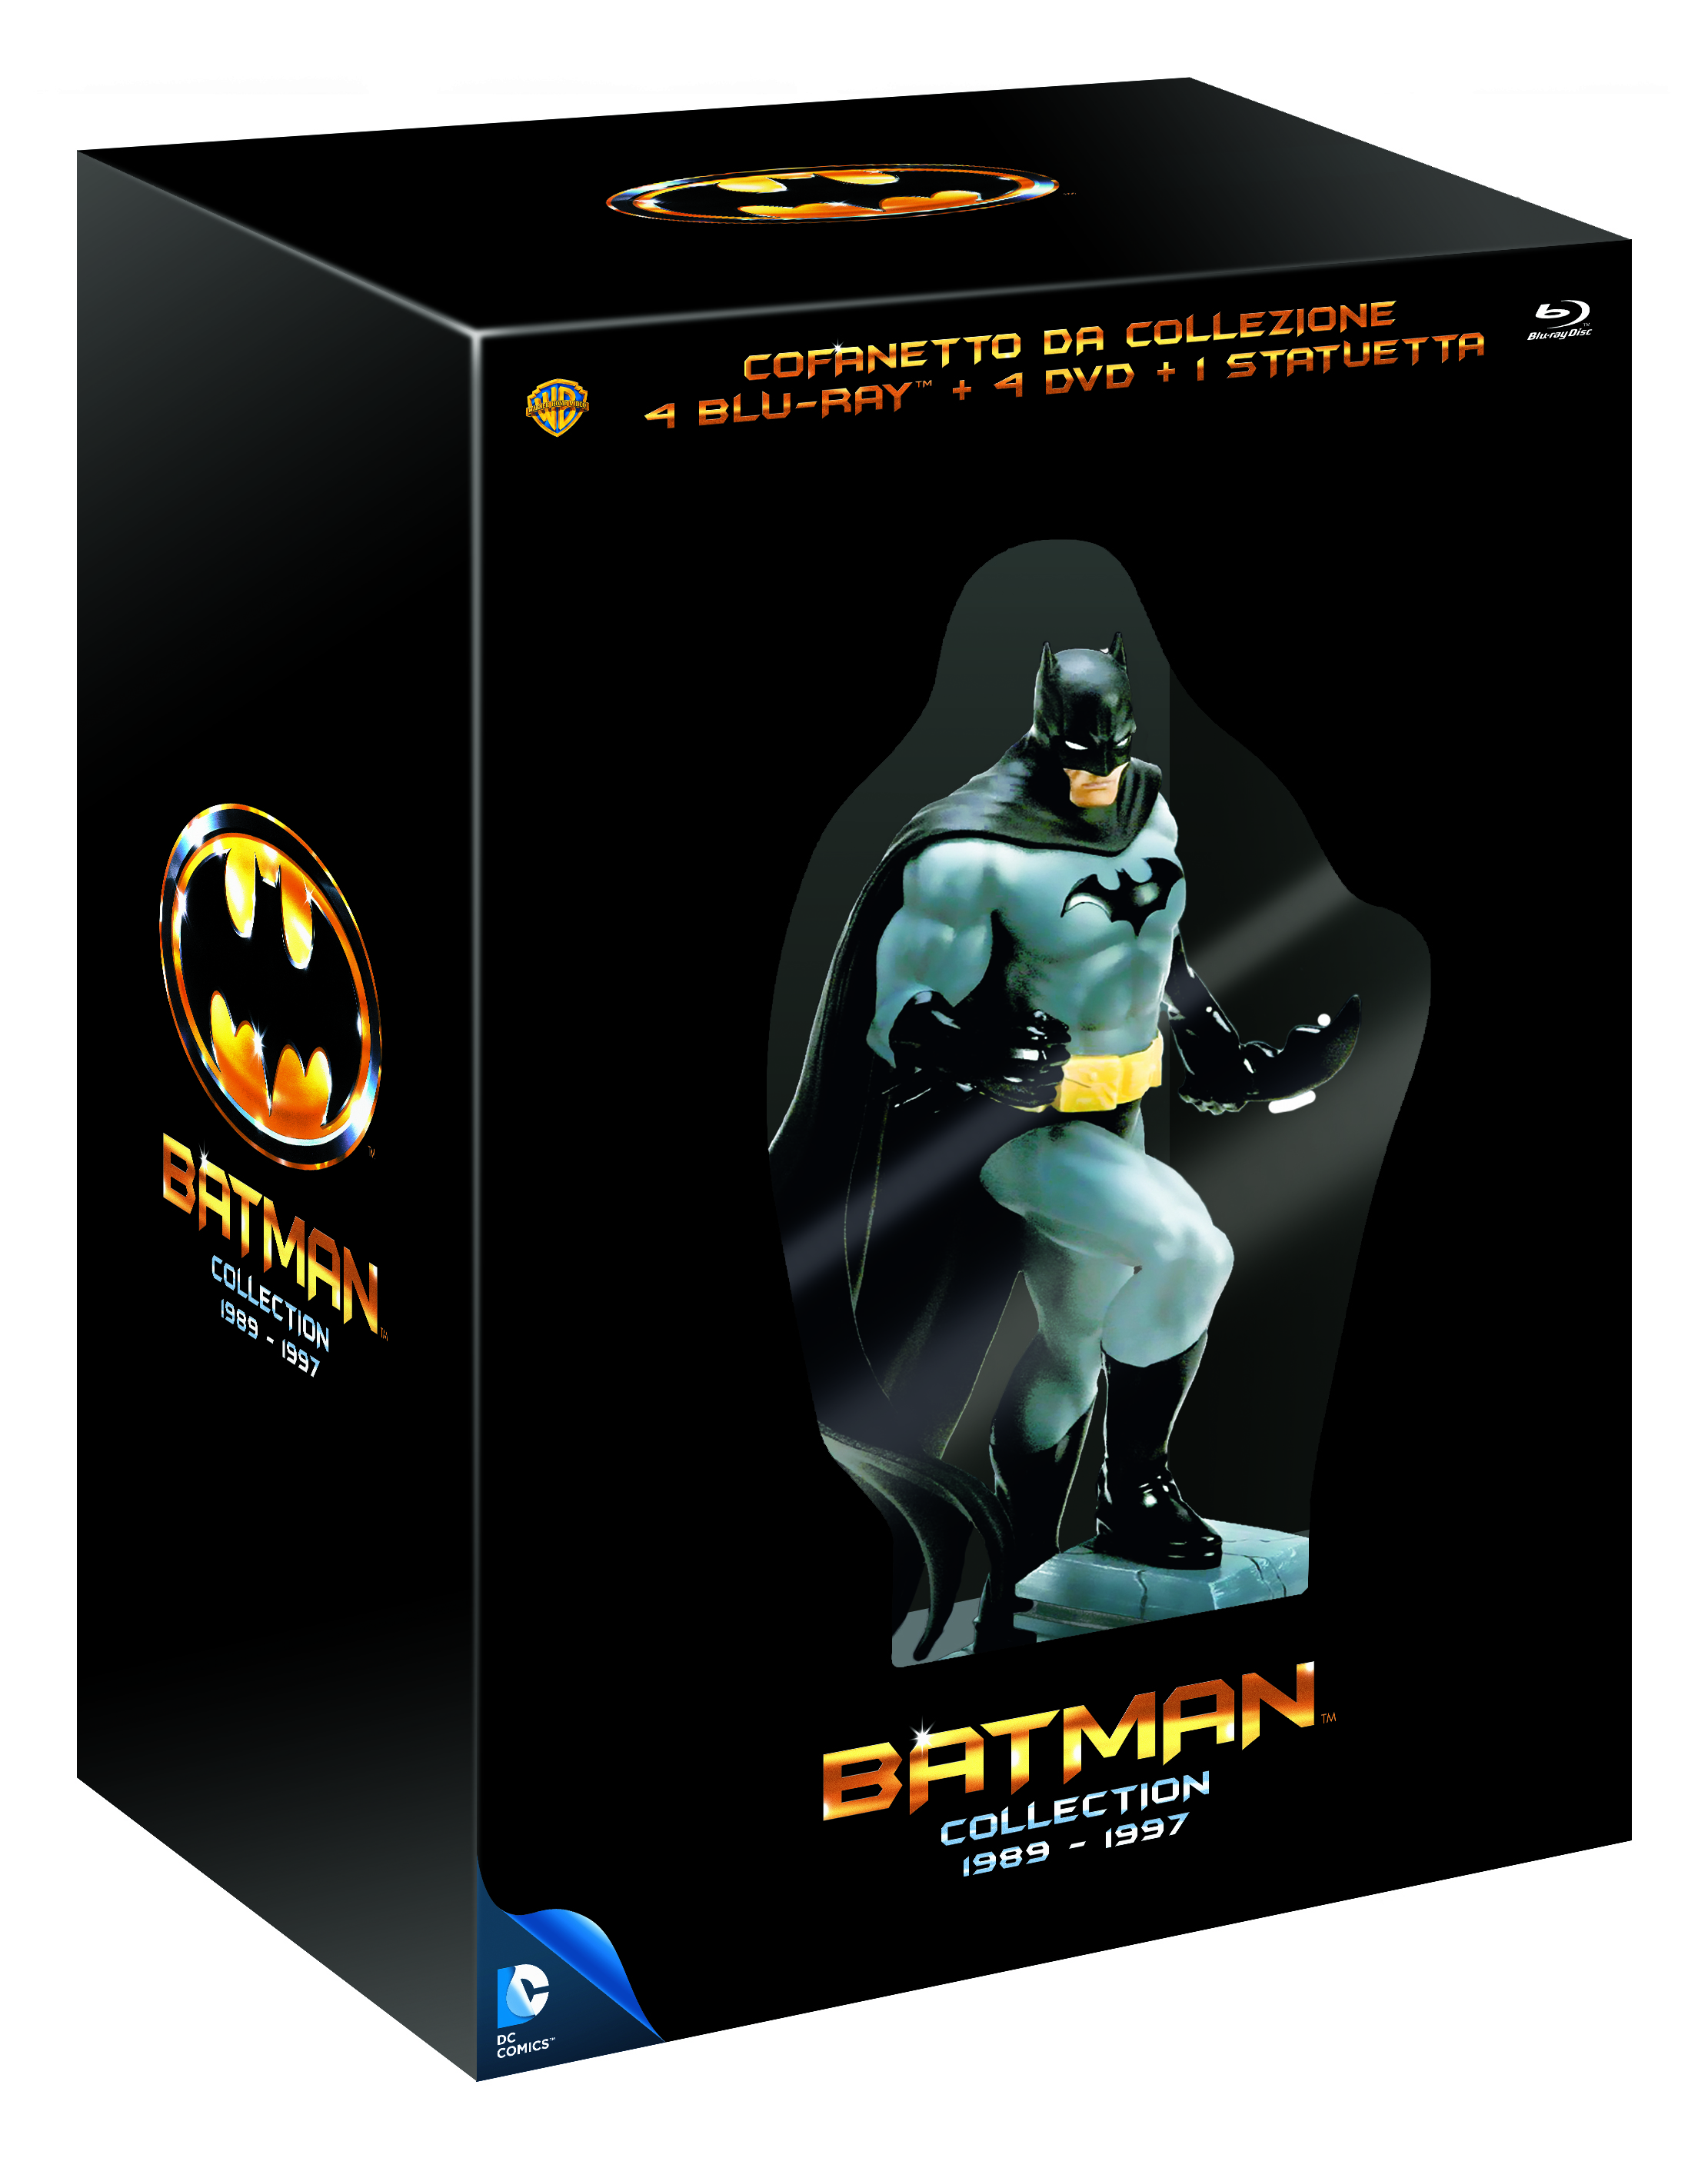 batman collection 1989-1997 limited